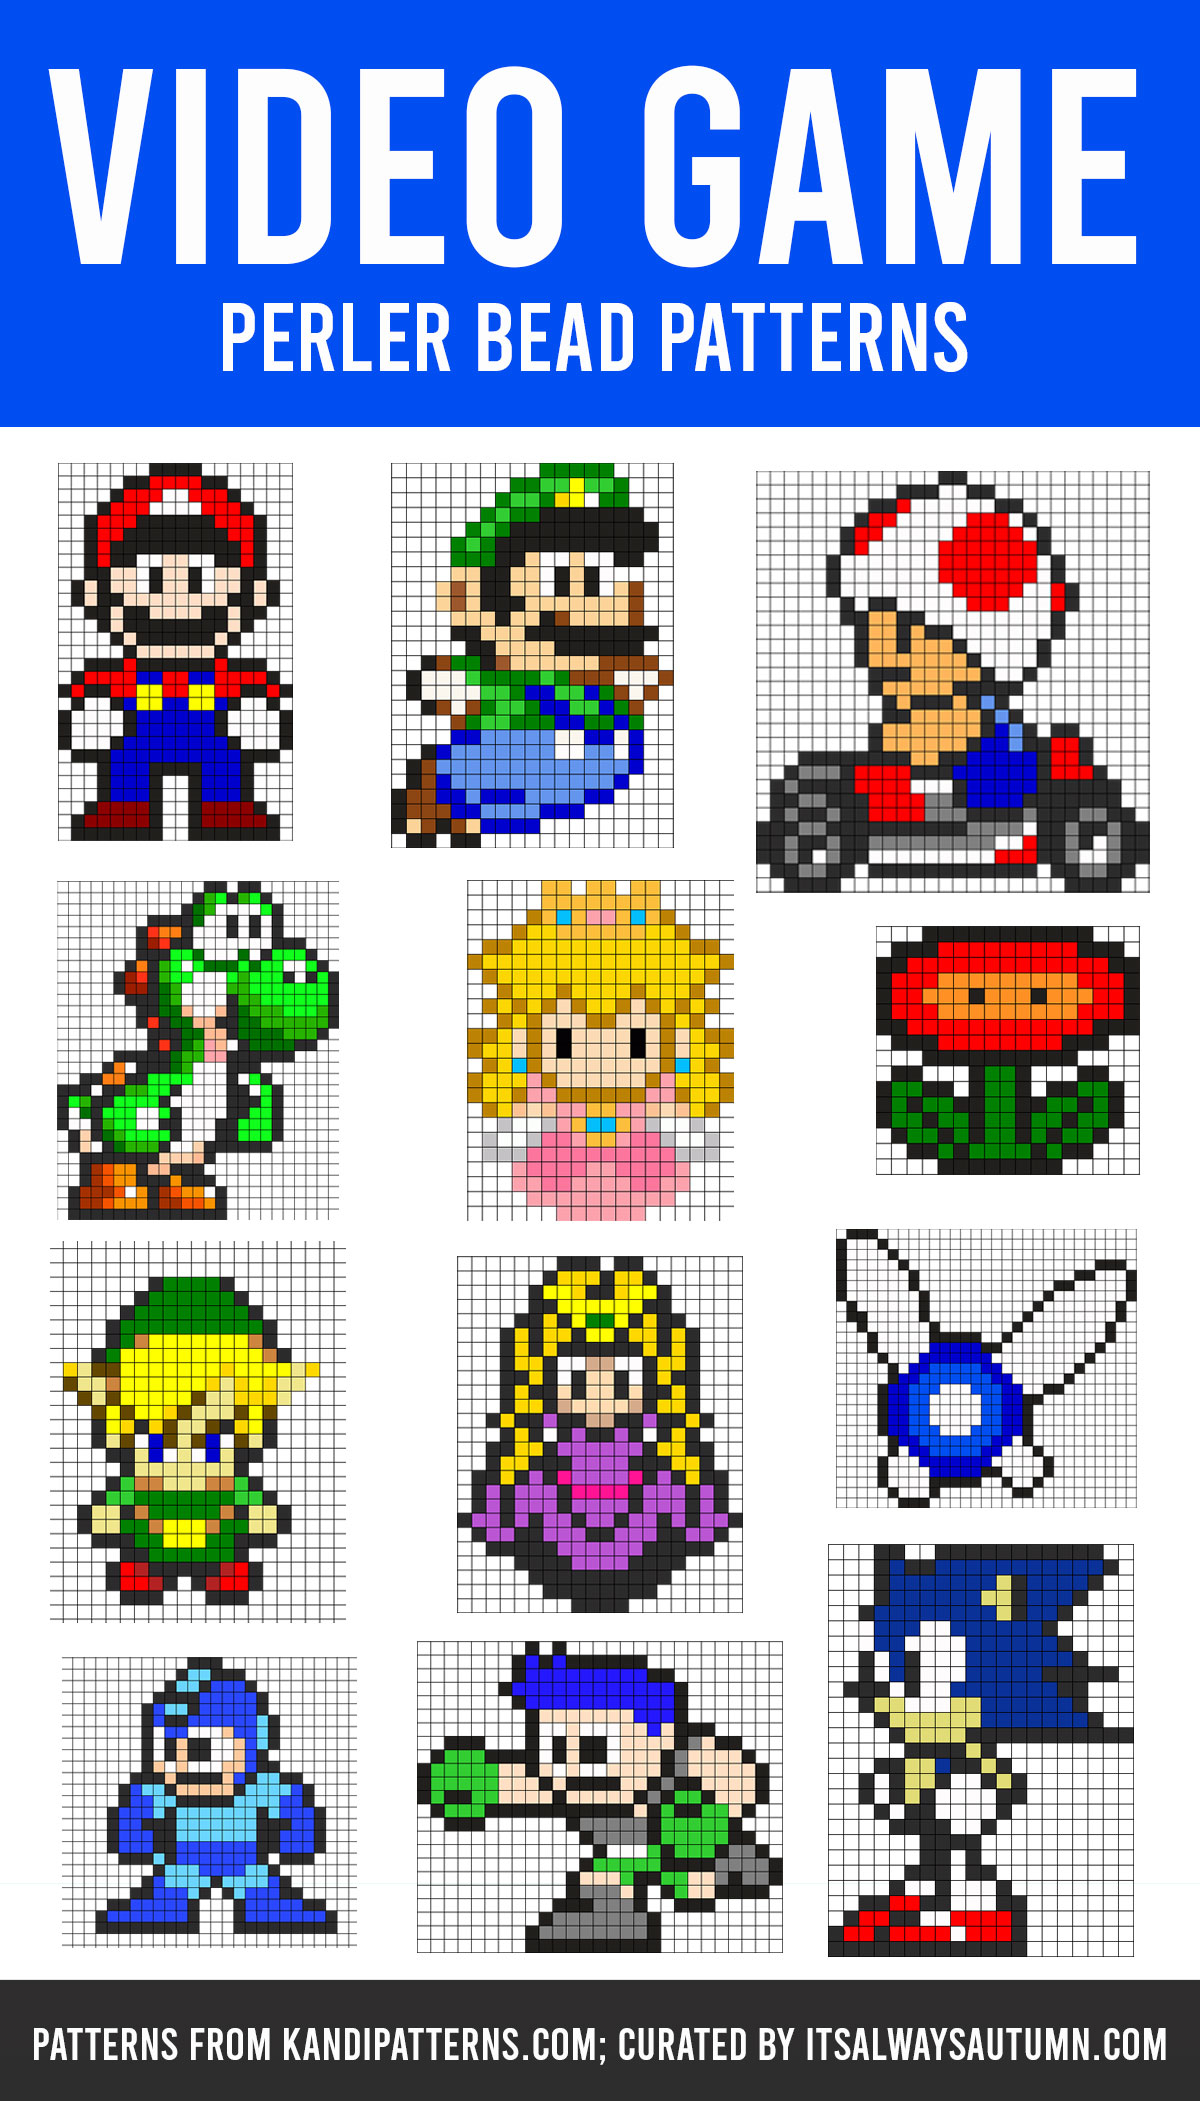 Video Game Perler bead patterns; Mario perler bead patterns